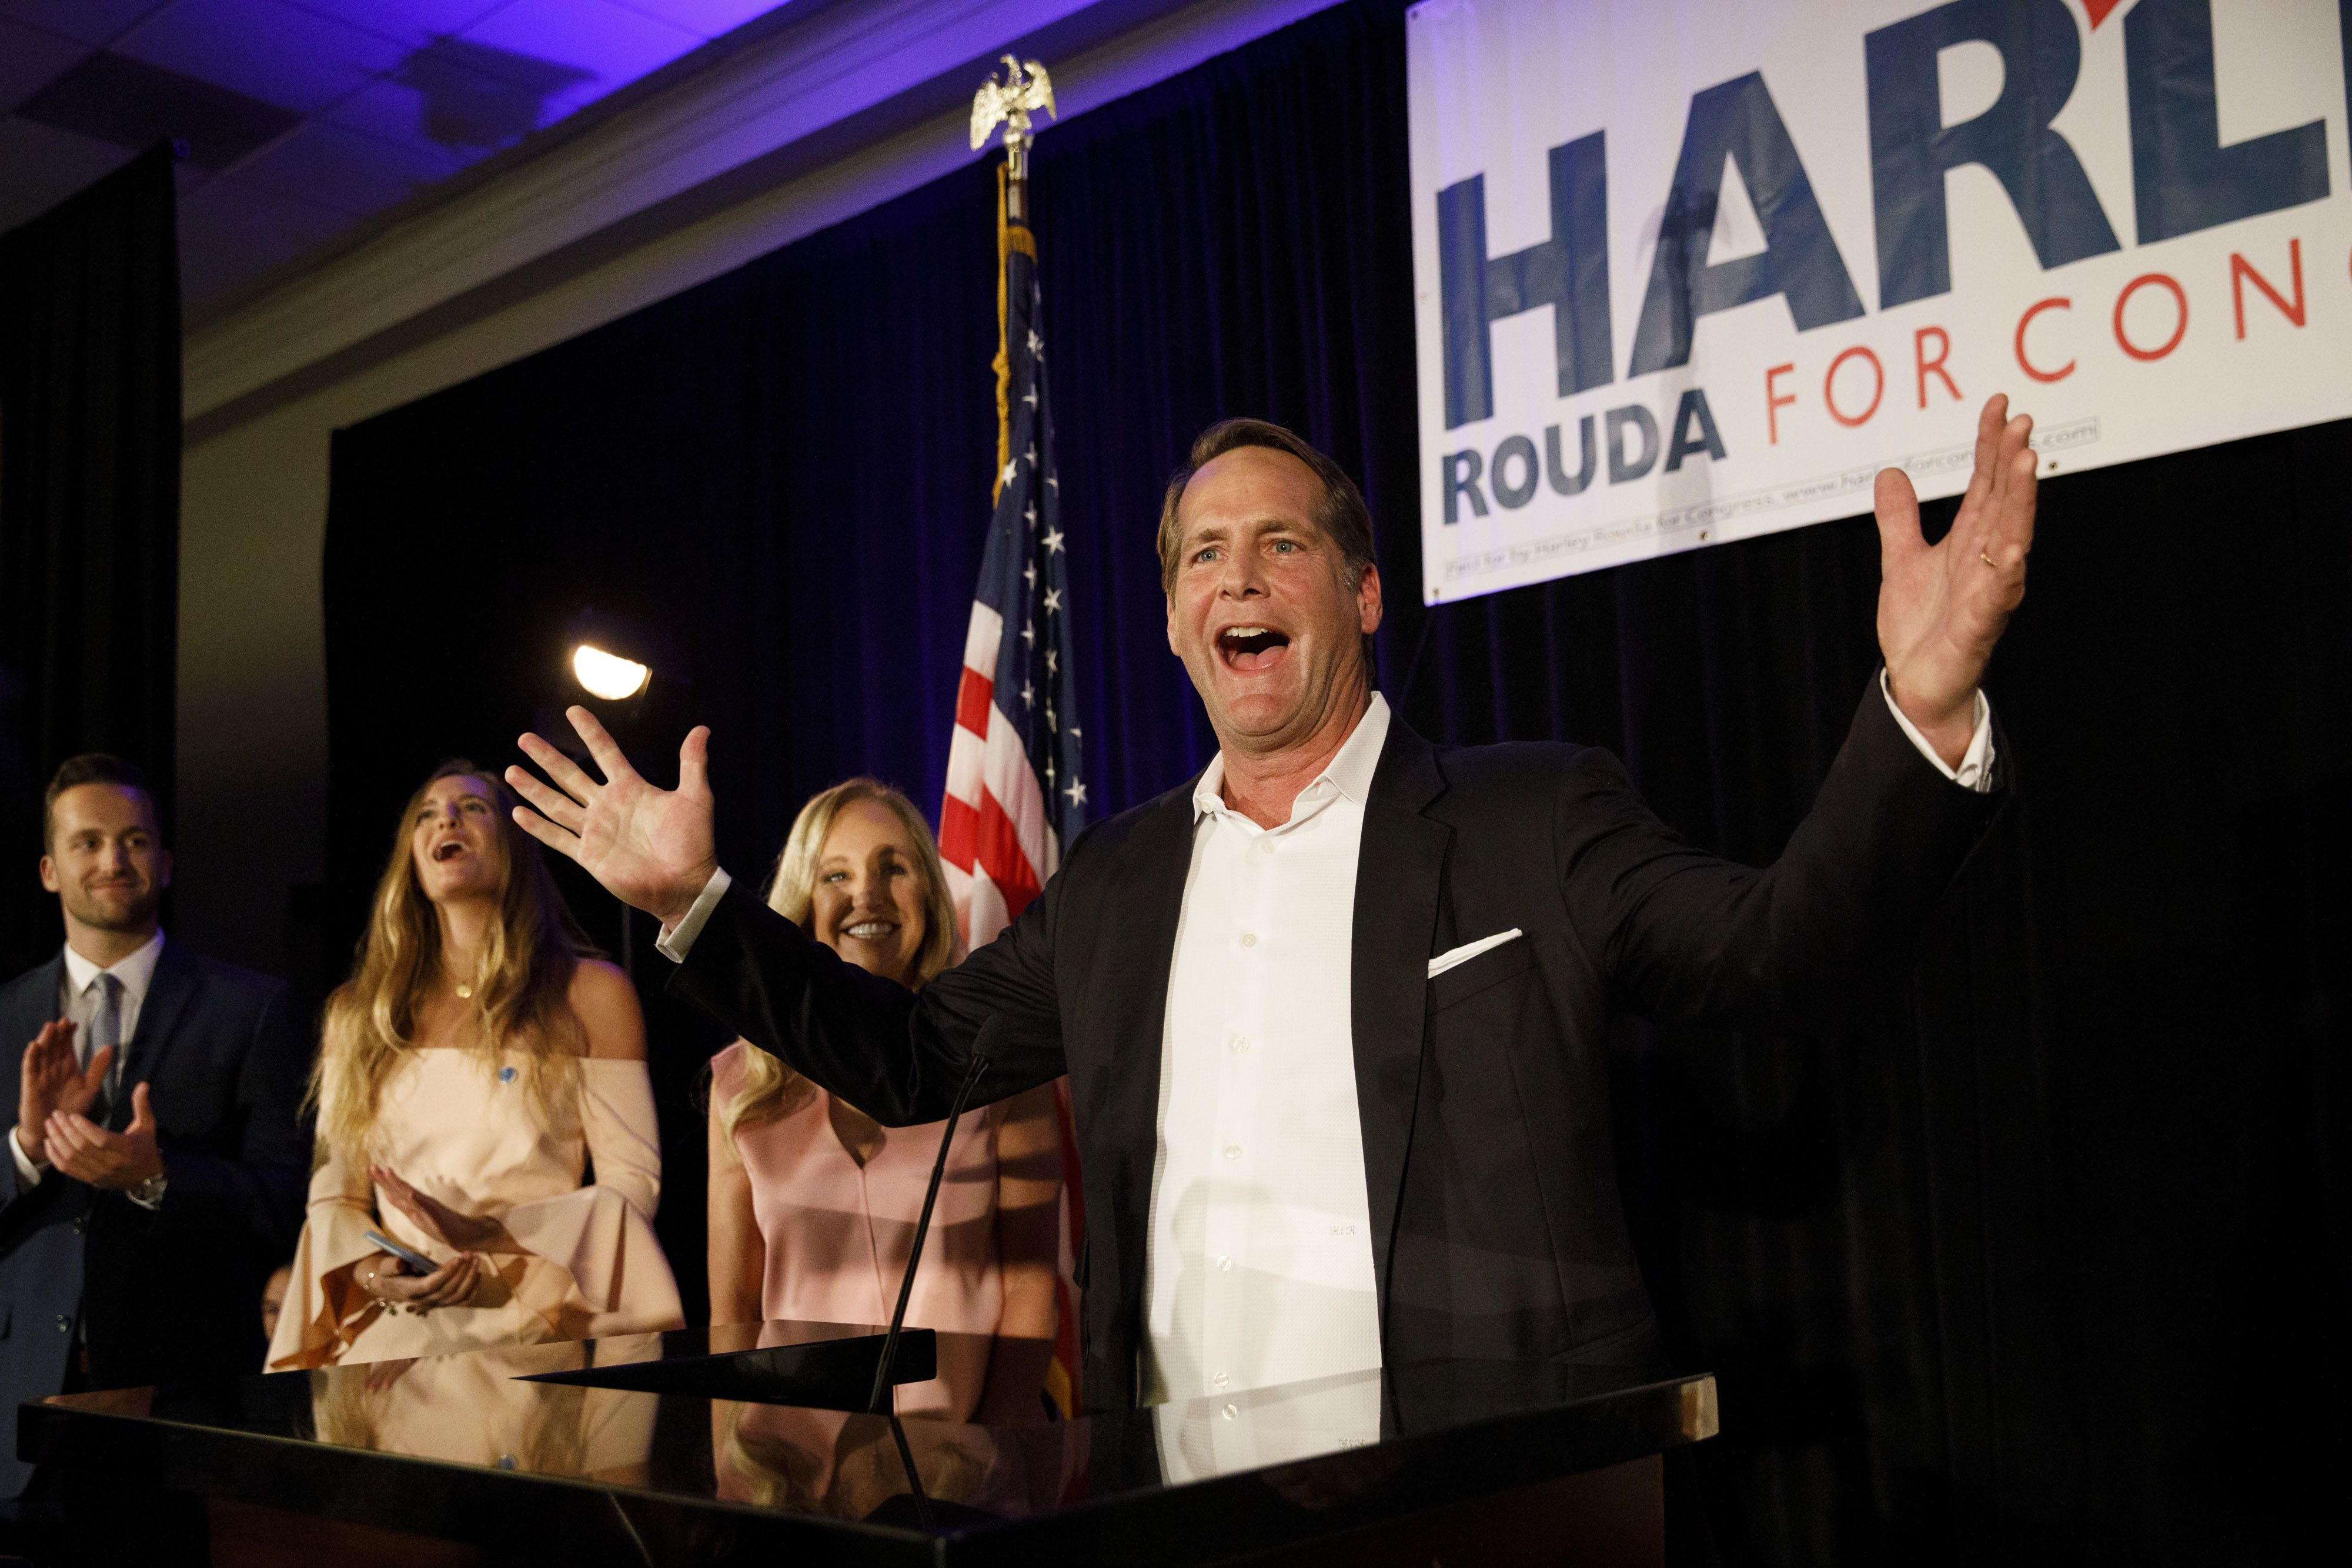 Democratic candidate Harley Rouda defeated Republican Rep. Dana Rohrabacher in California's 48th congressional district